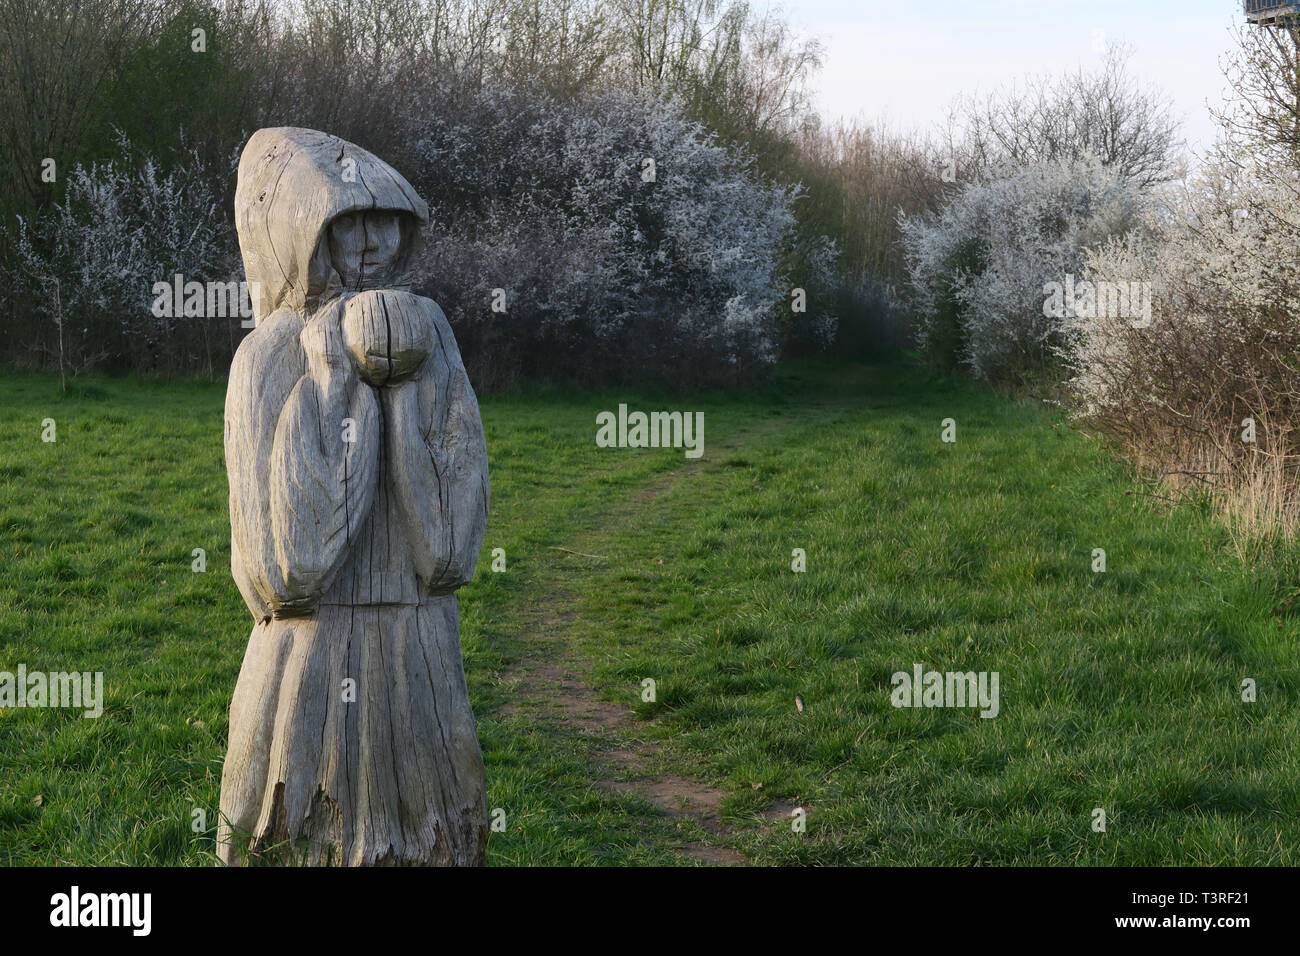 Carved wooden figure, at Grappenhall Wood, off Broad Lane, Grappenhall, South Warrington, Cheshire, England, UK - Stock Image